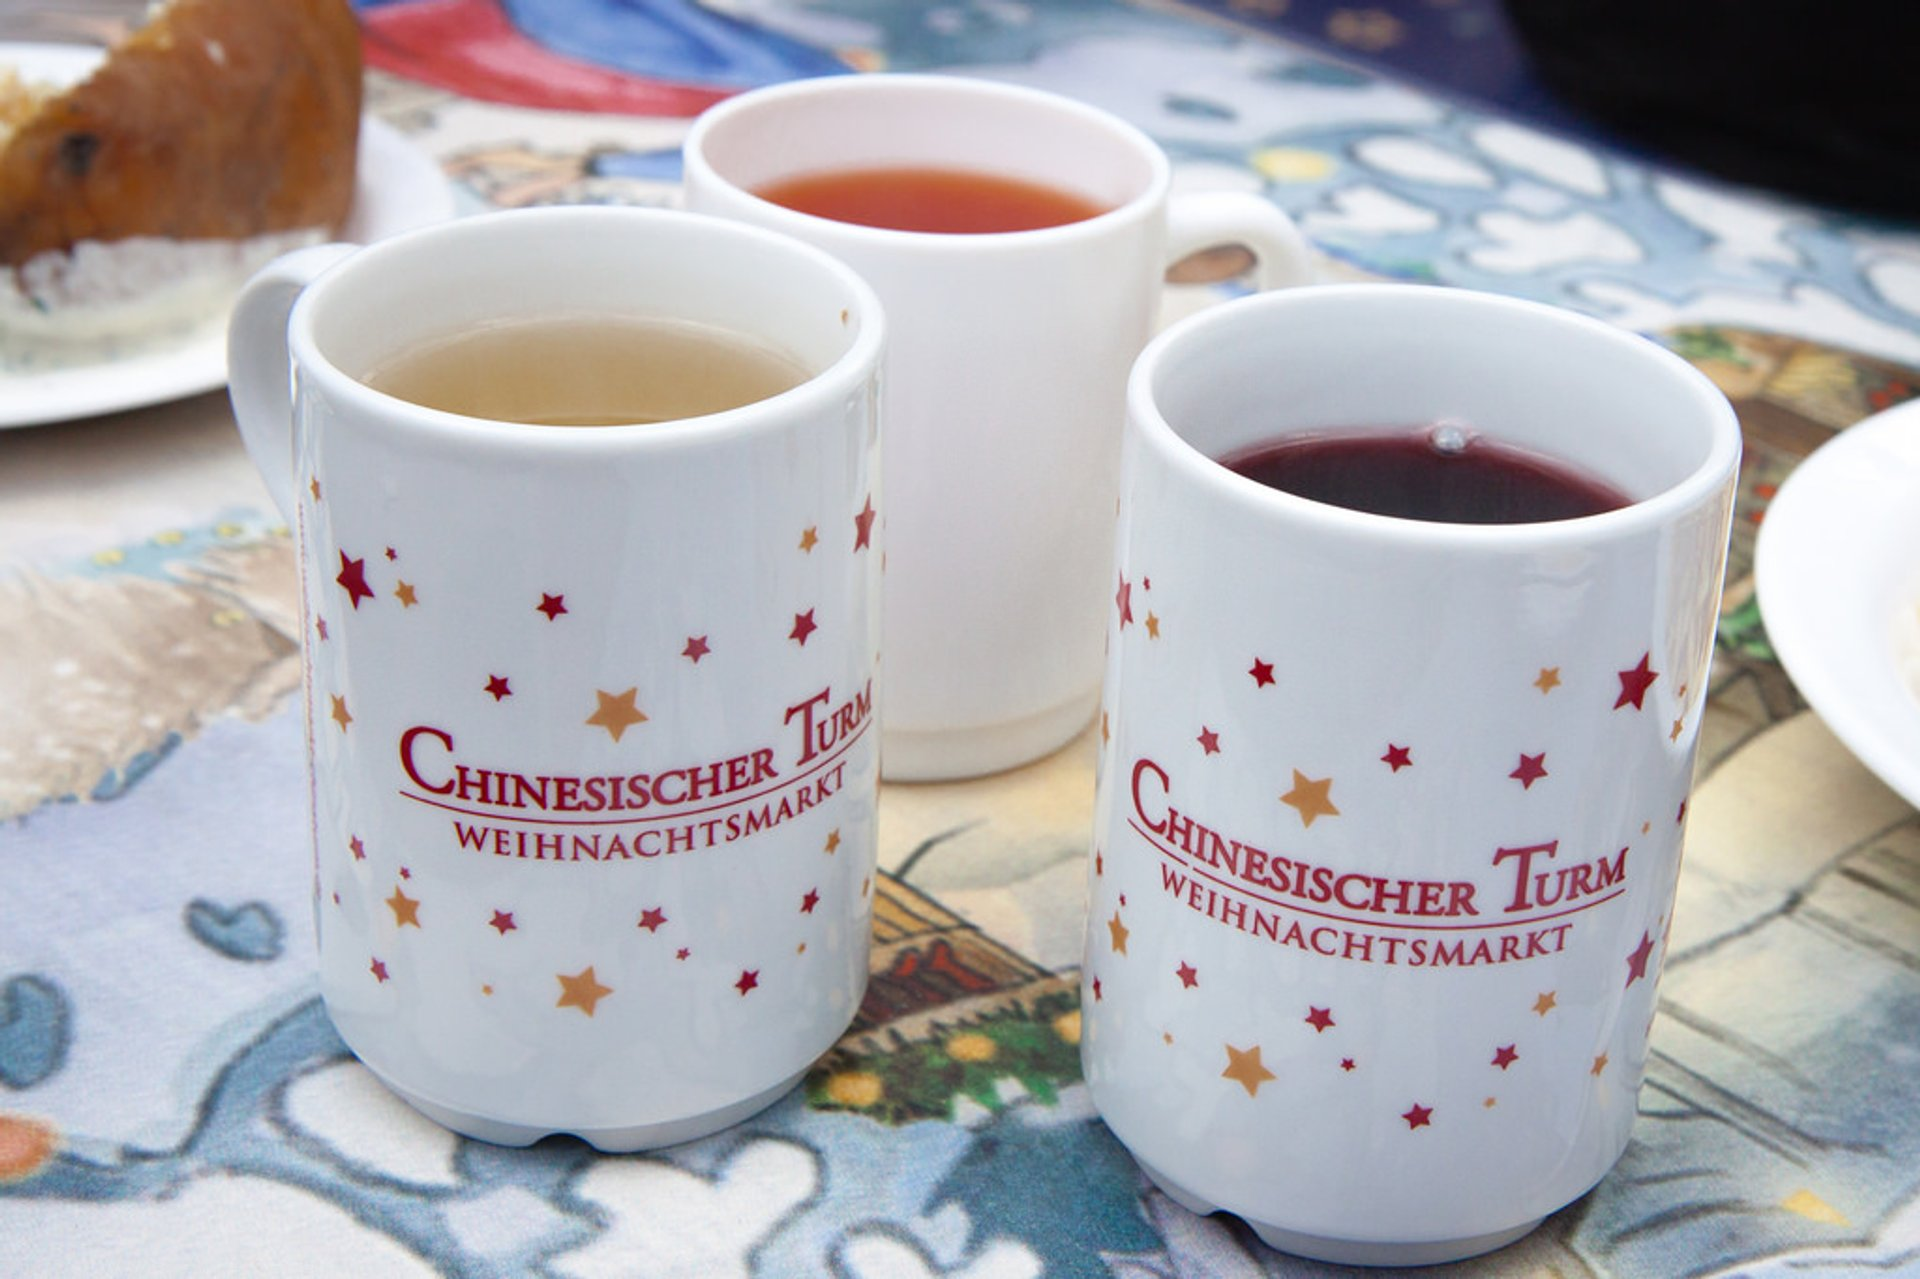 Glühwein and Kinderpunsch at Munich Christmas Market 2019